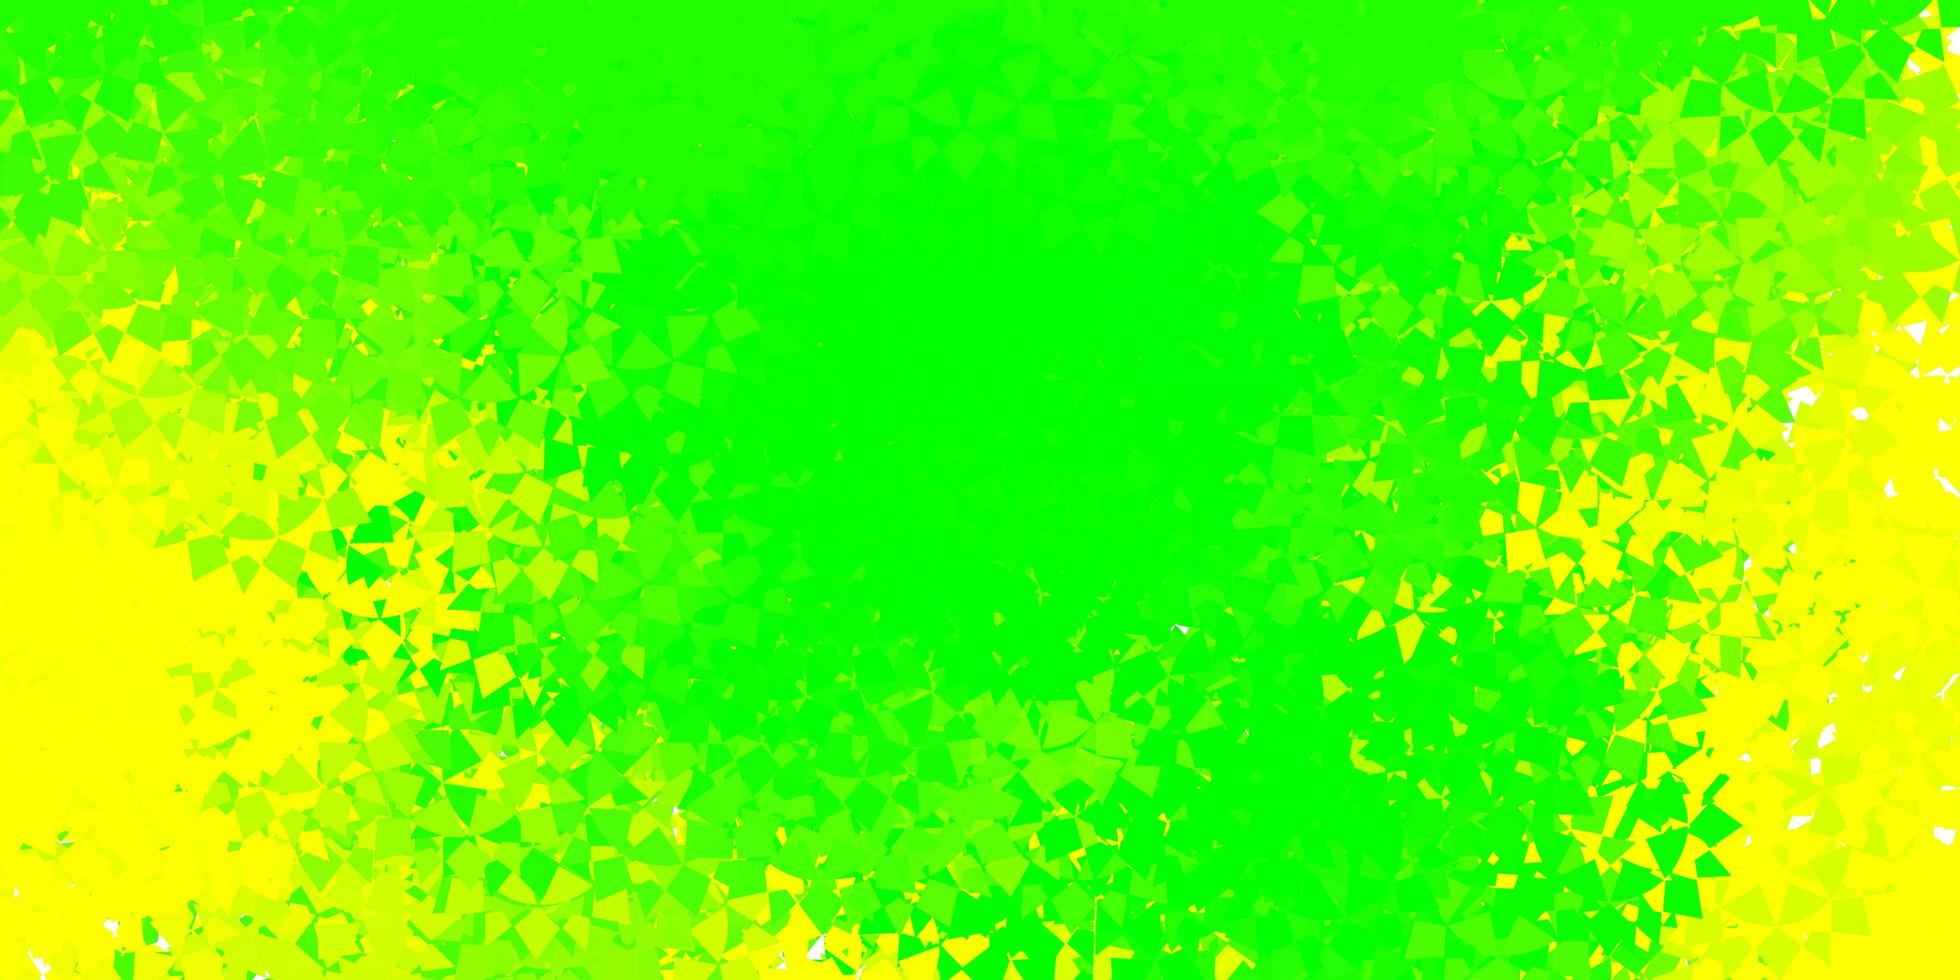 Light green and yellow background with polygonal forms. vector